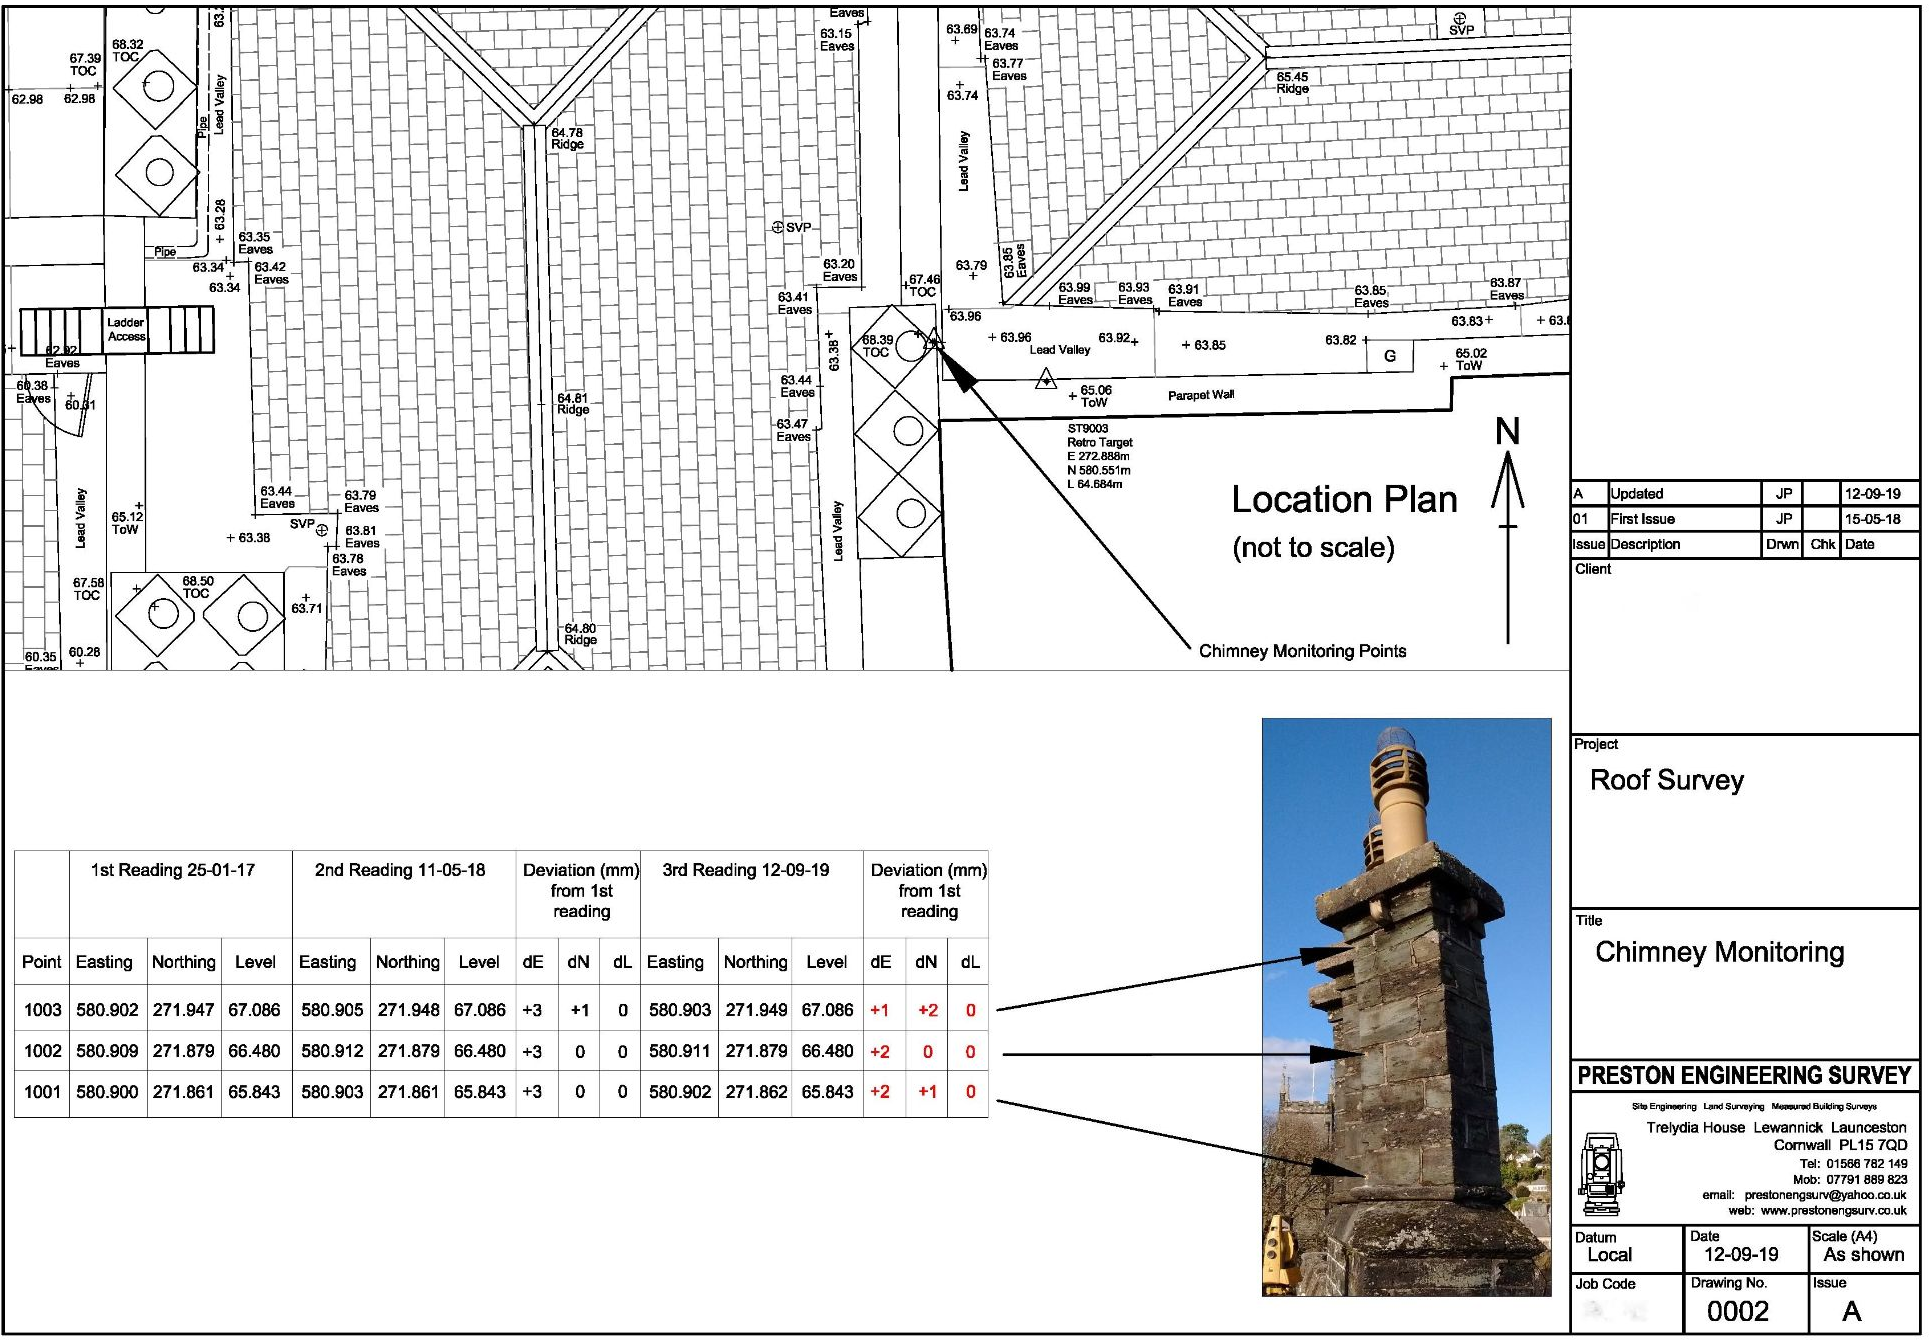 Structural Deformation Monitoring